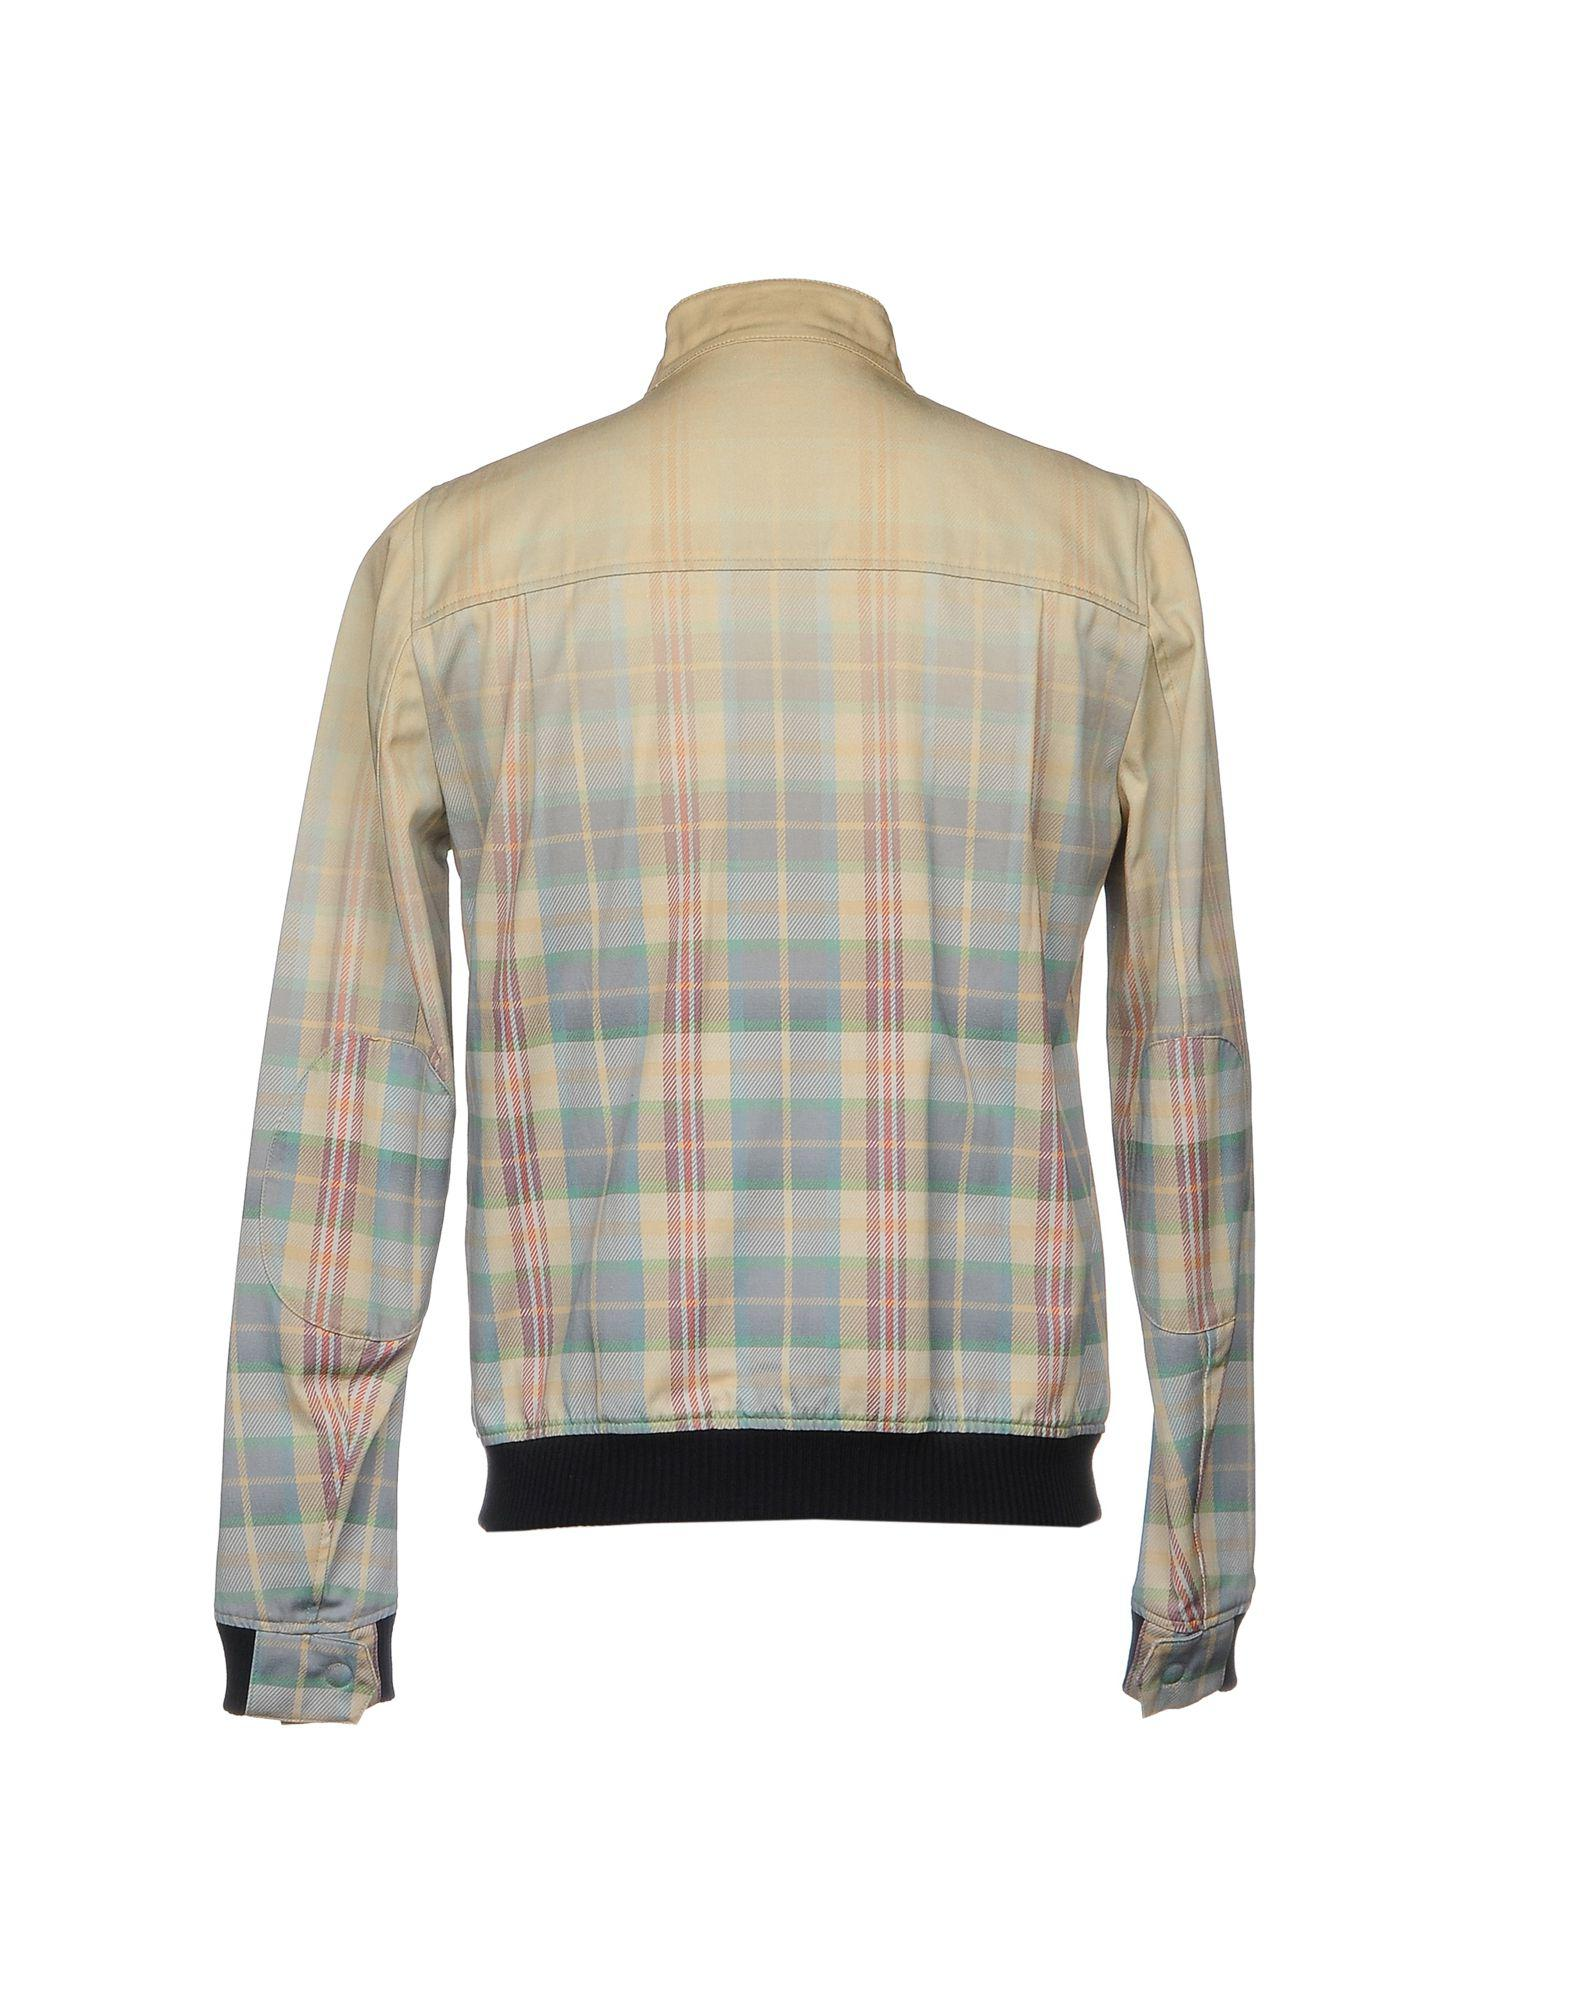 Band of Outsiders Cotton Jacket for Men